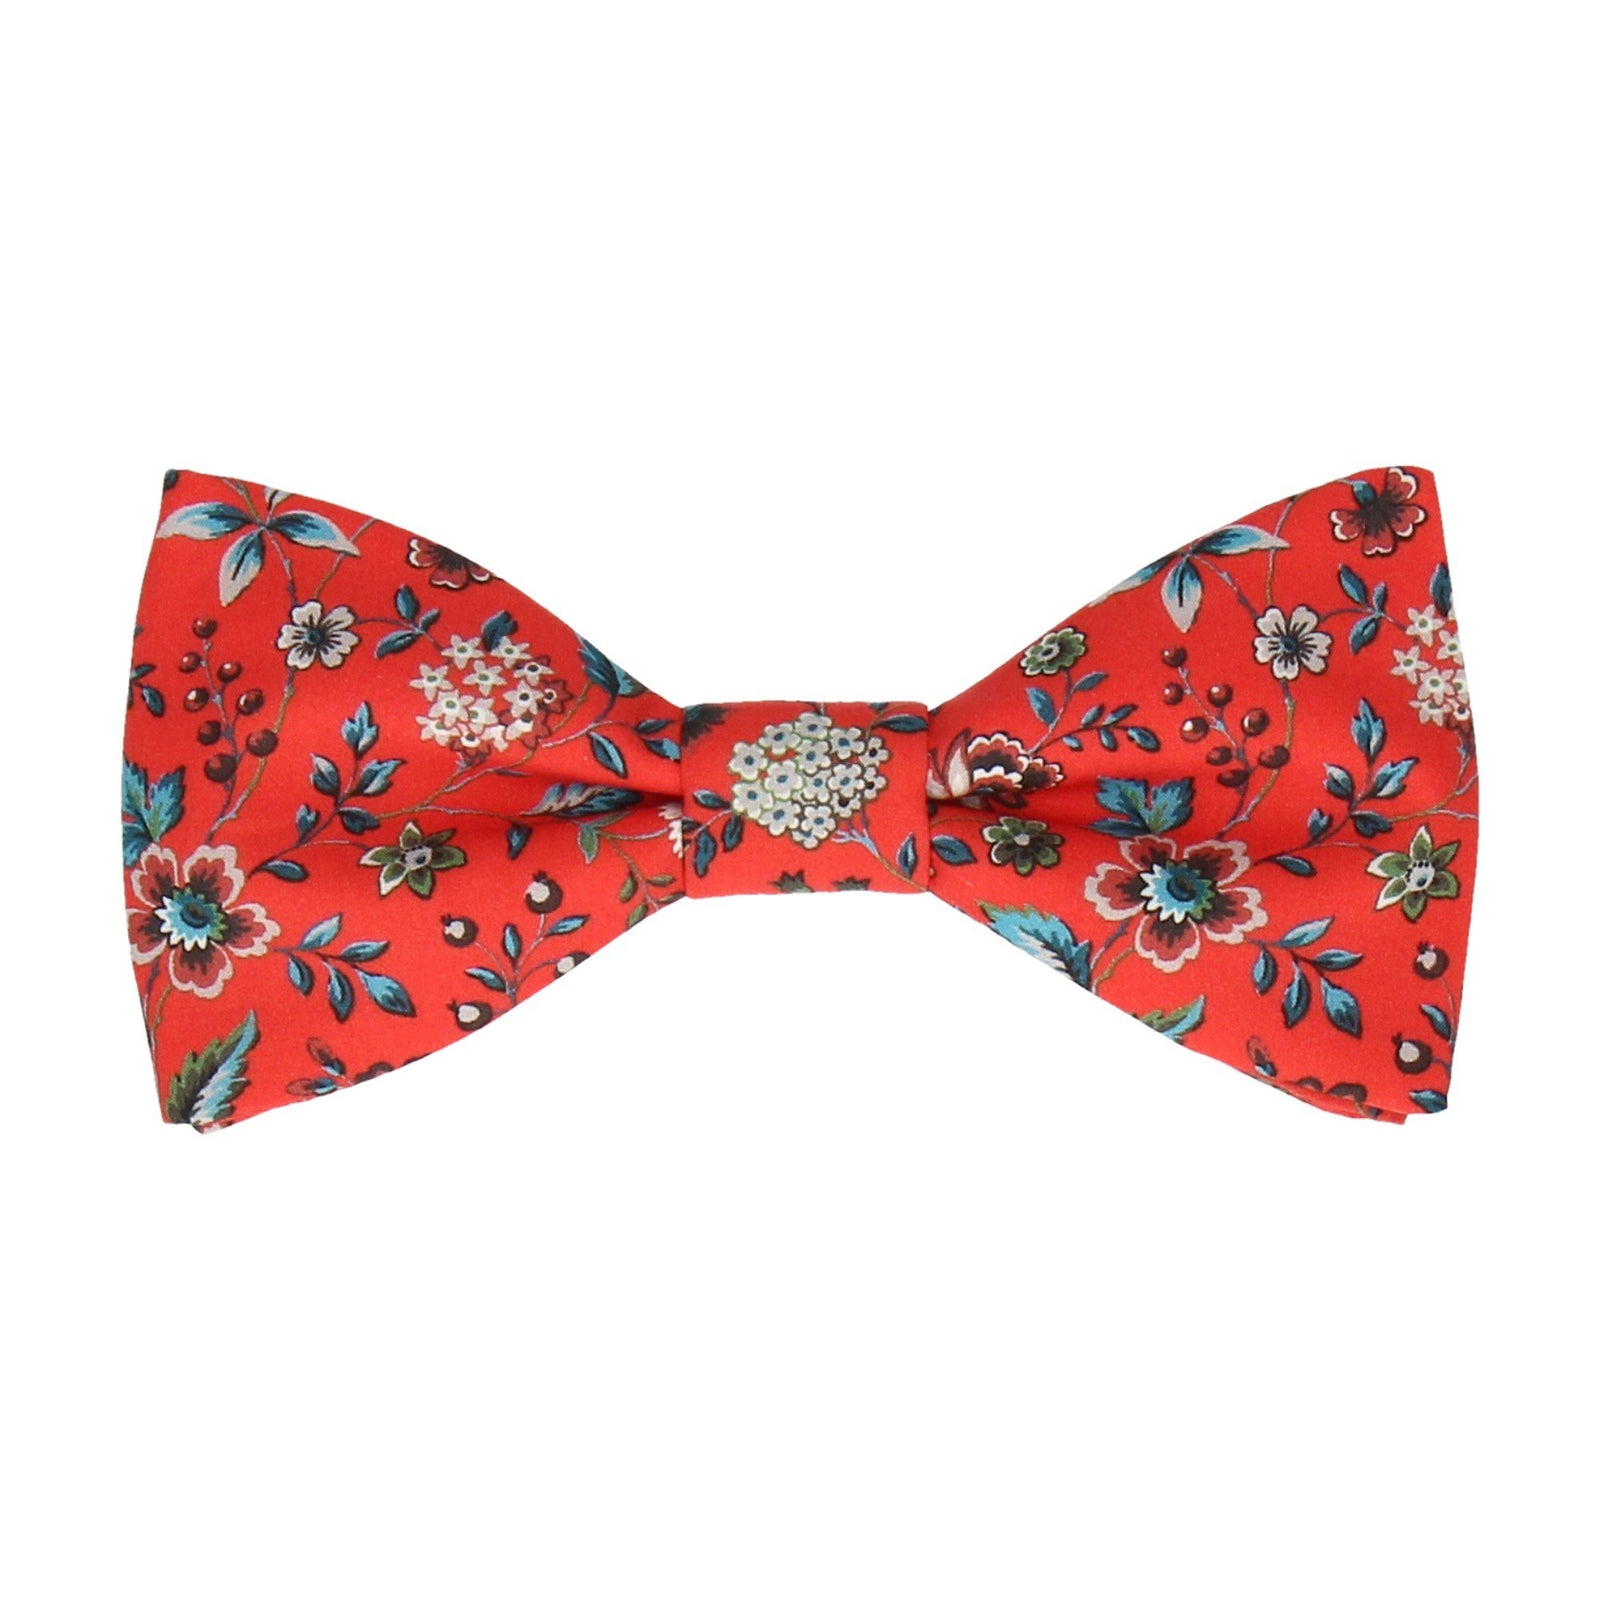 Blood Orange Floral Rousseau Liberty Bow Tie